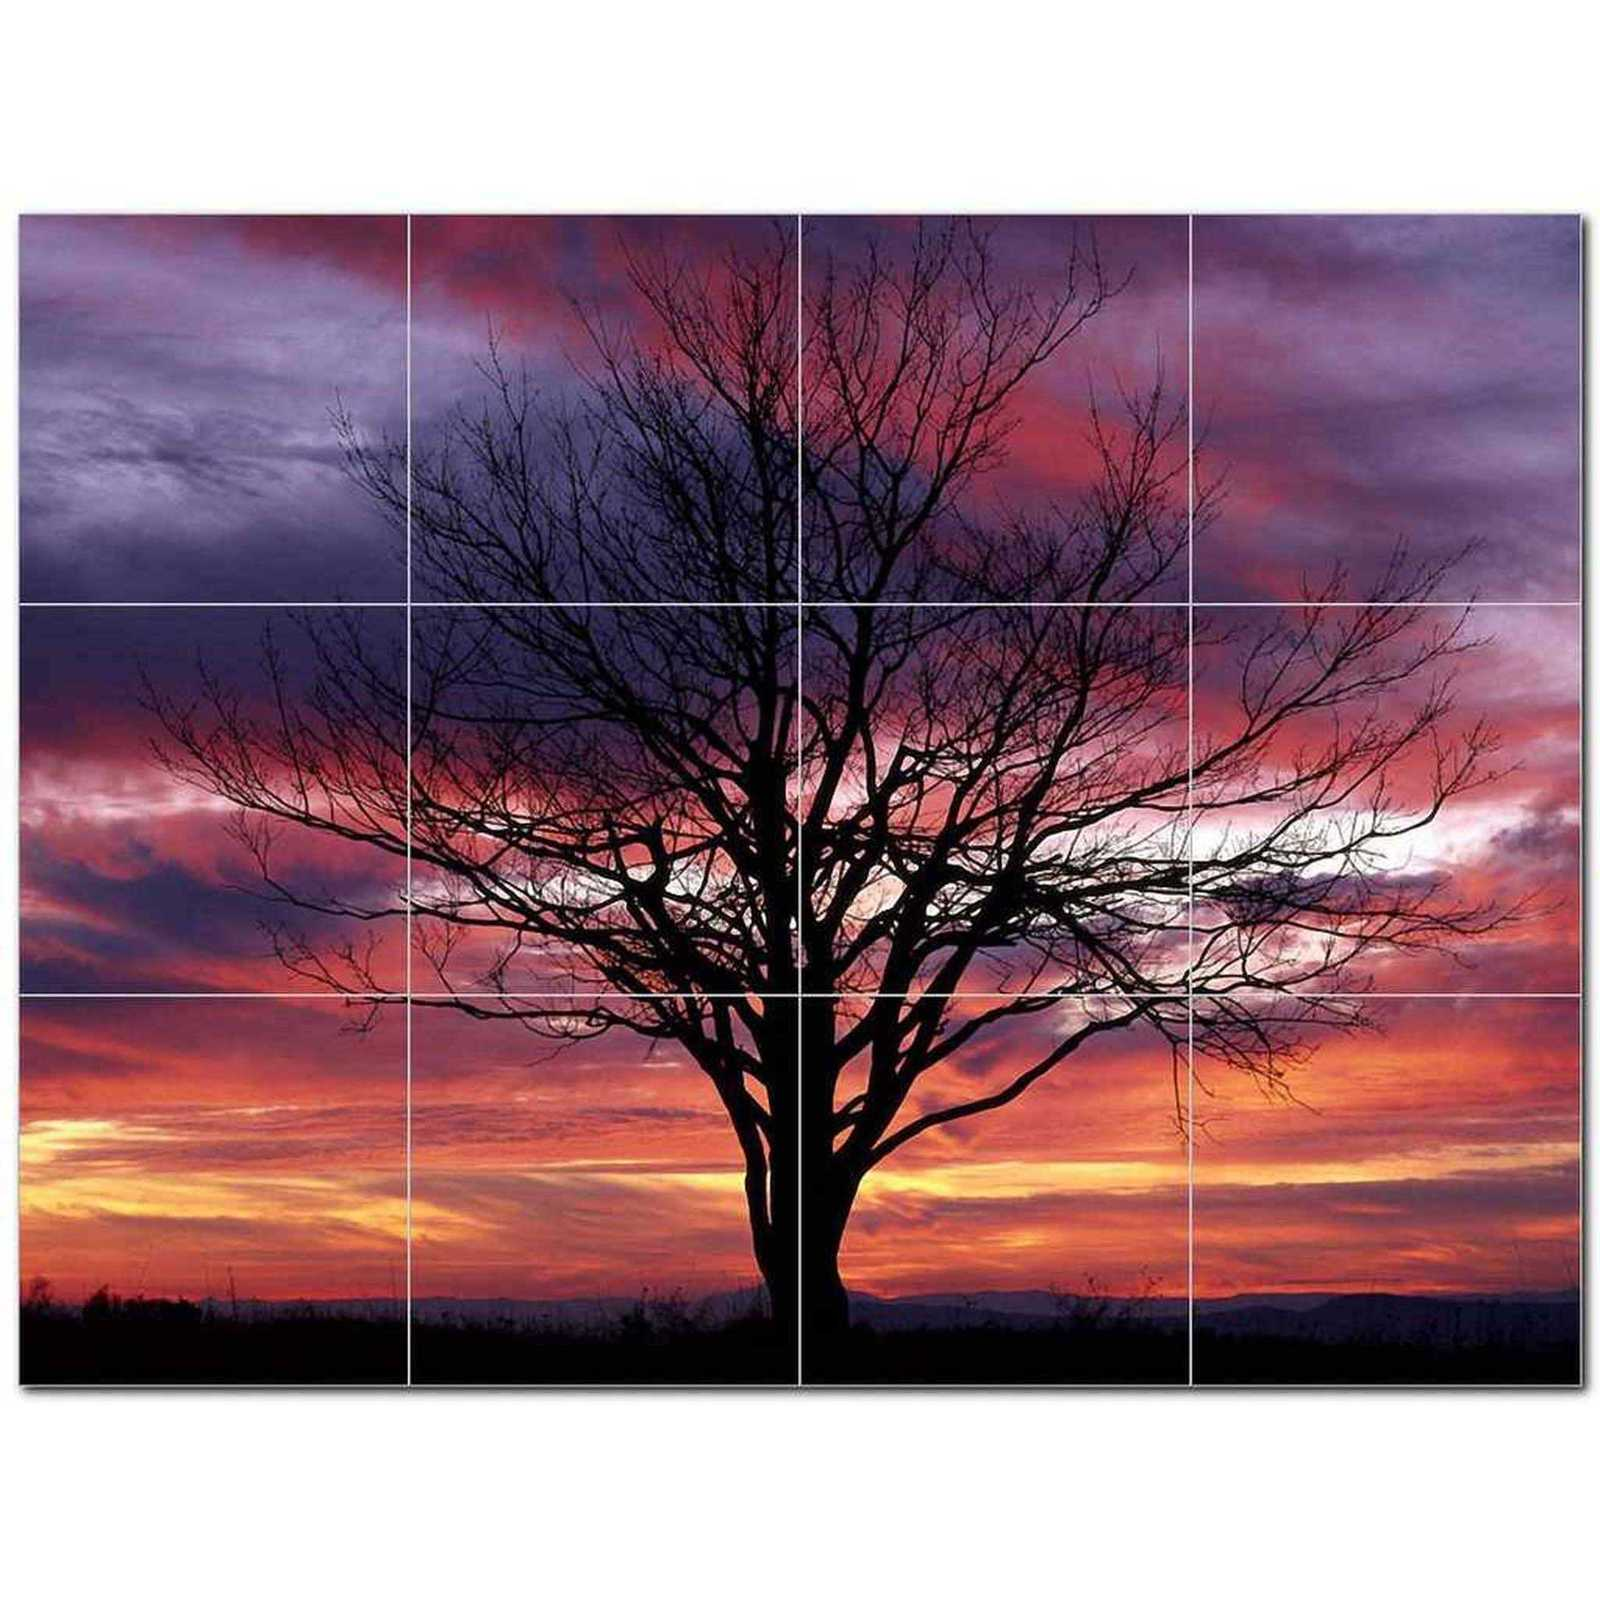 Primary image for Sunset Picture Ceramic Tile Mural Kitchen Backsplash Bathroom Shower BAZ405978